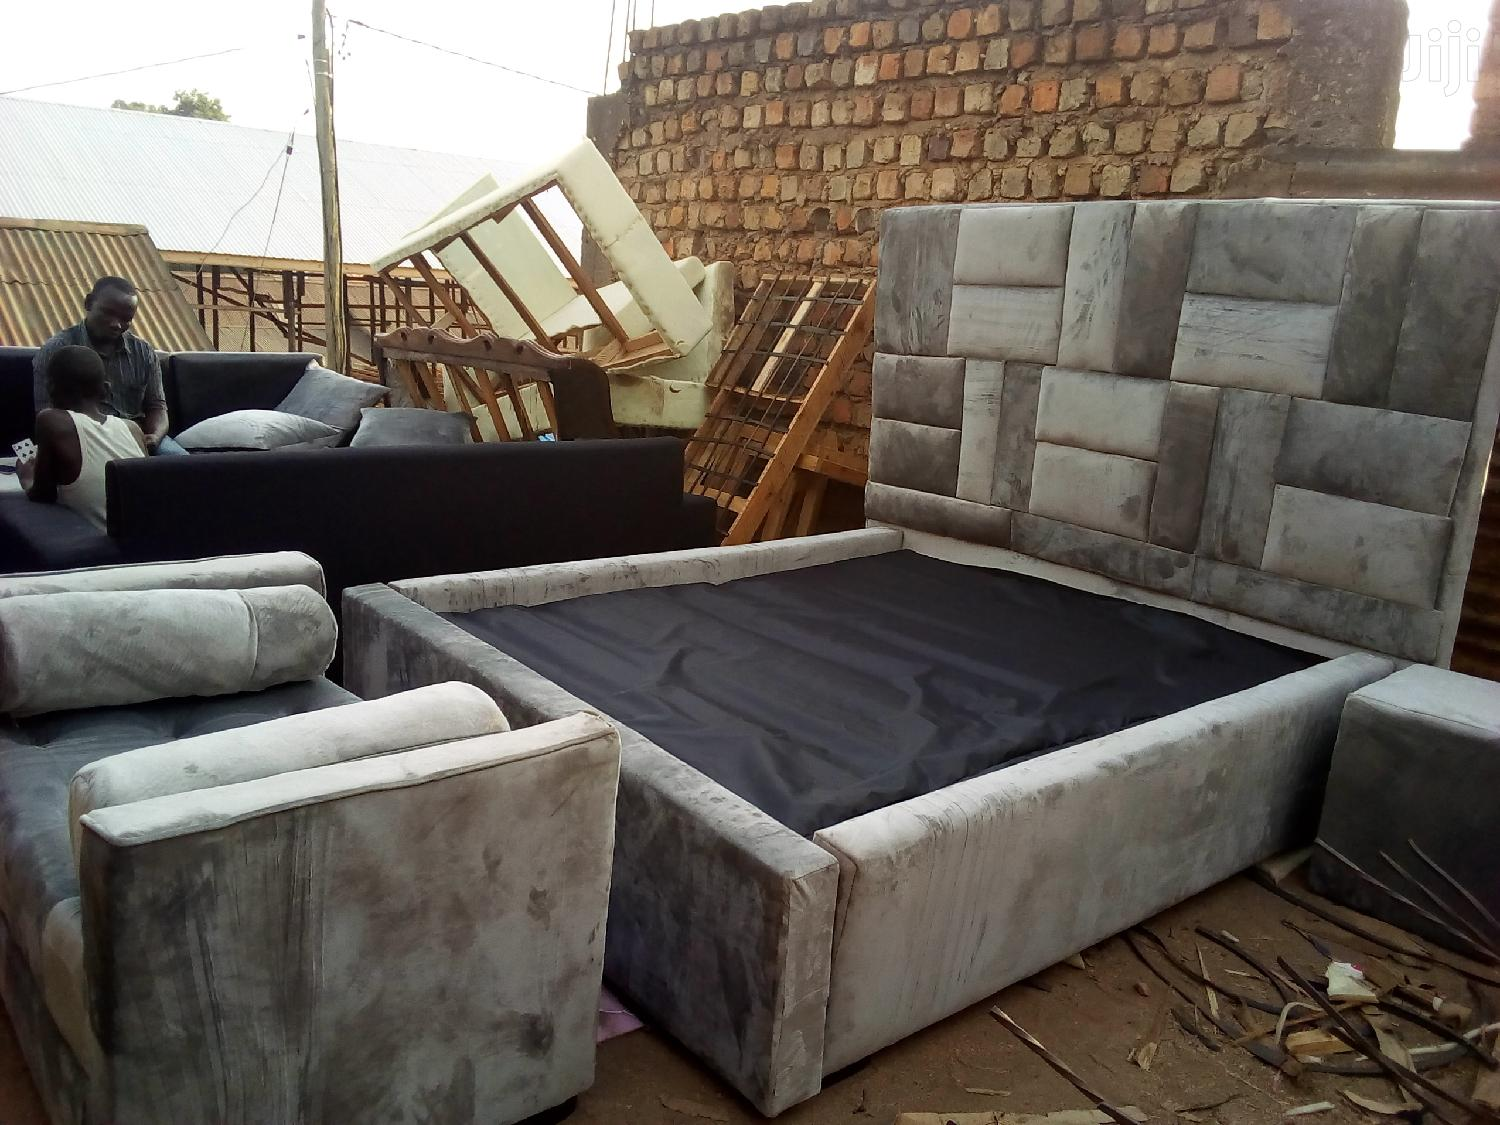 Qulity Bed 5by6